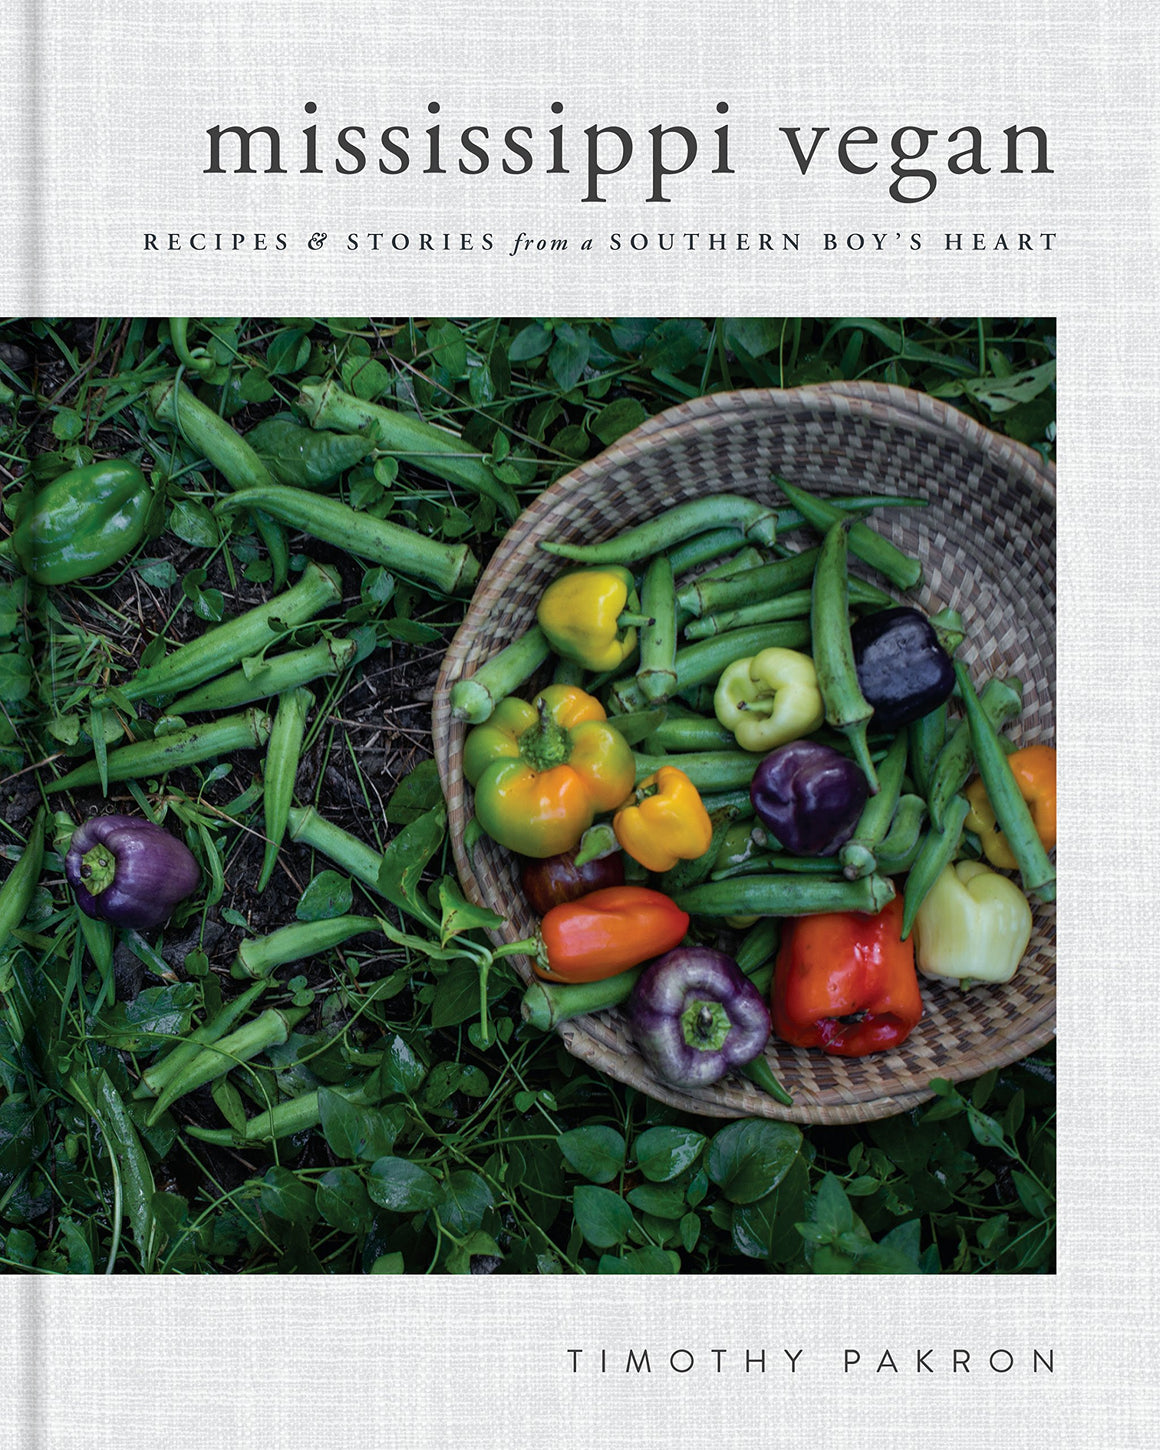 SIGNED! Timothy Pakron. Mississippi Vegan: Recipes and Stories from a Southern Boy's Heart